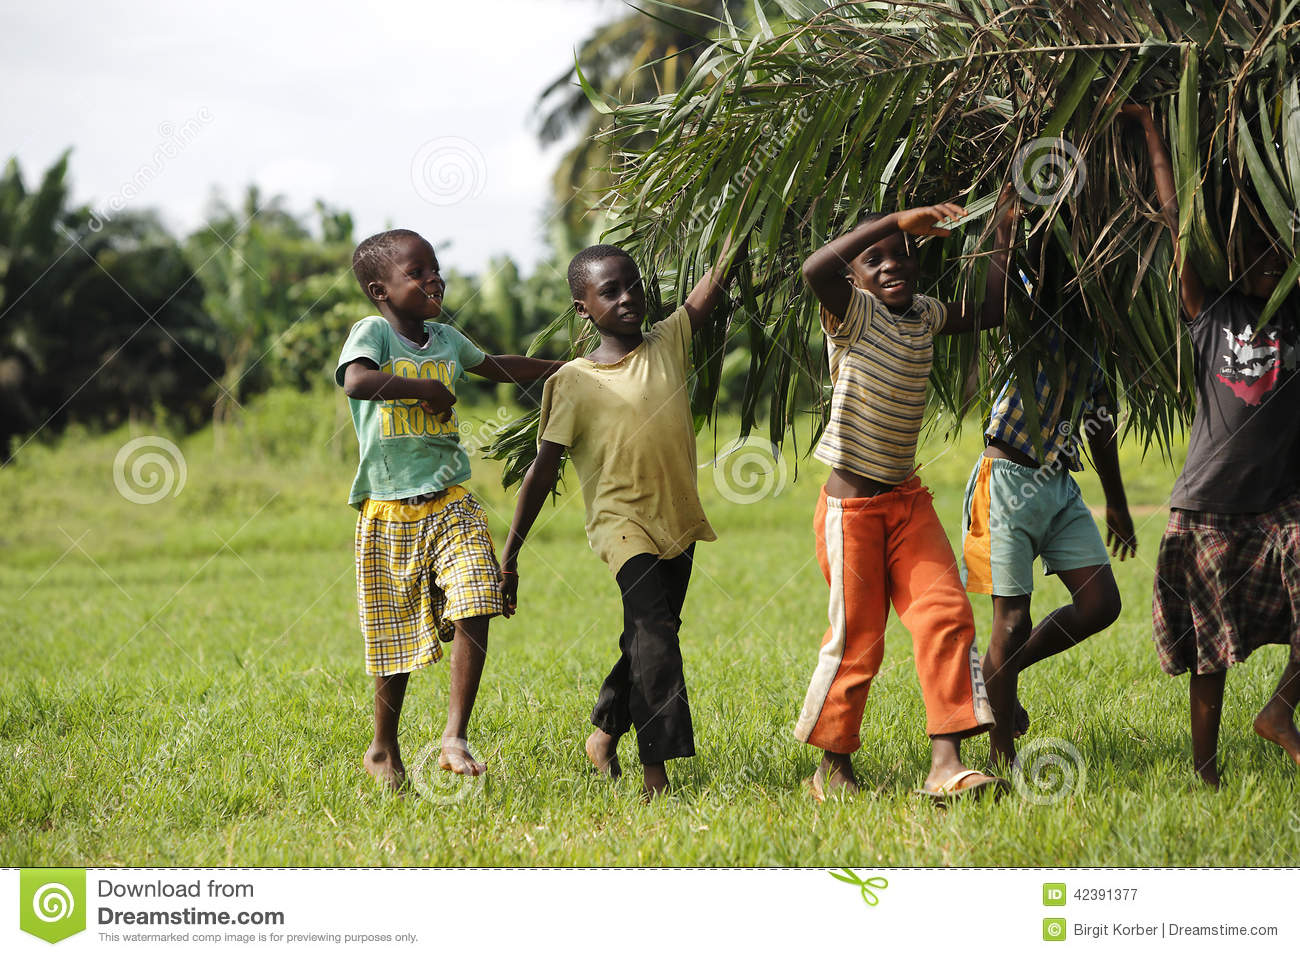 African kids help with carring palm leaves